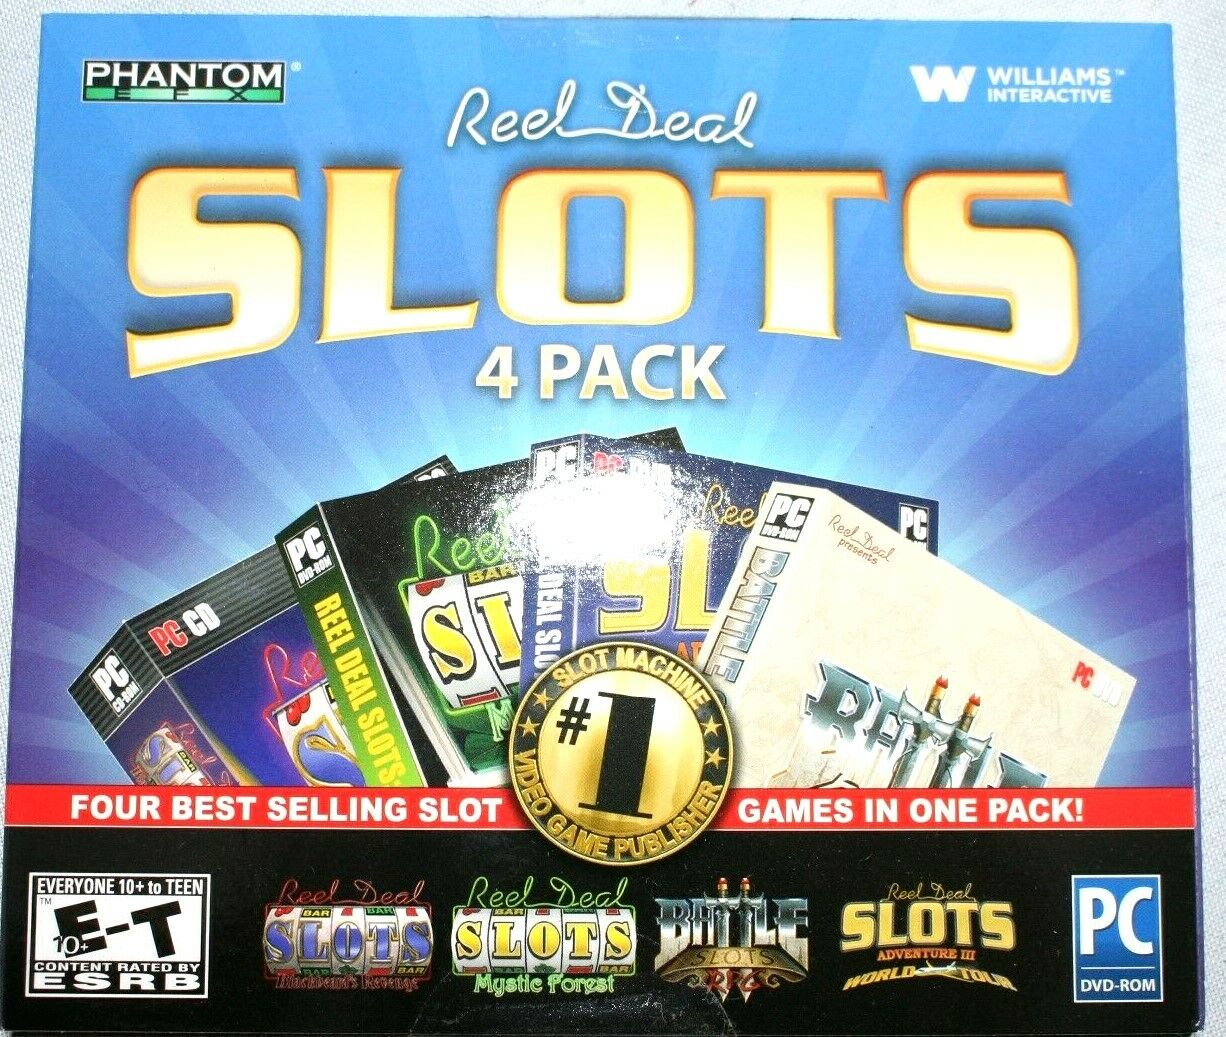 Computer Games - Reel Deal Slots 4 Pack PC Games Windows 10 8 7 XP Computer slot machines Game